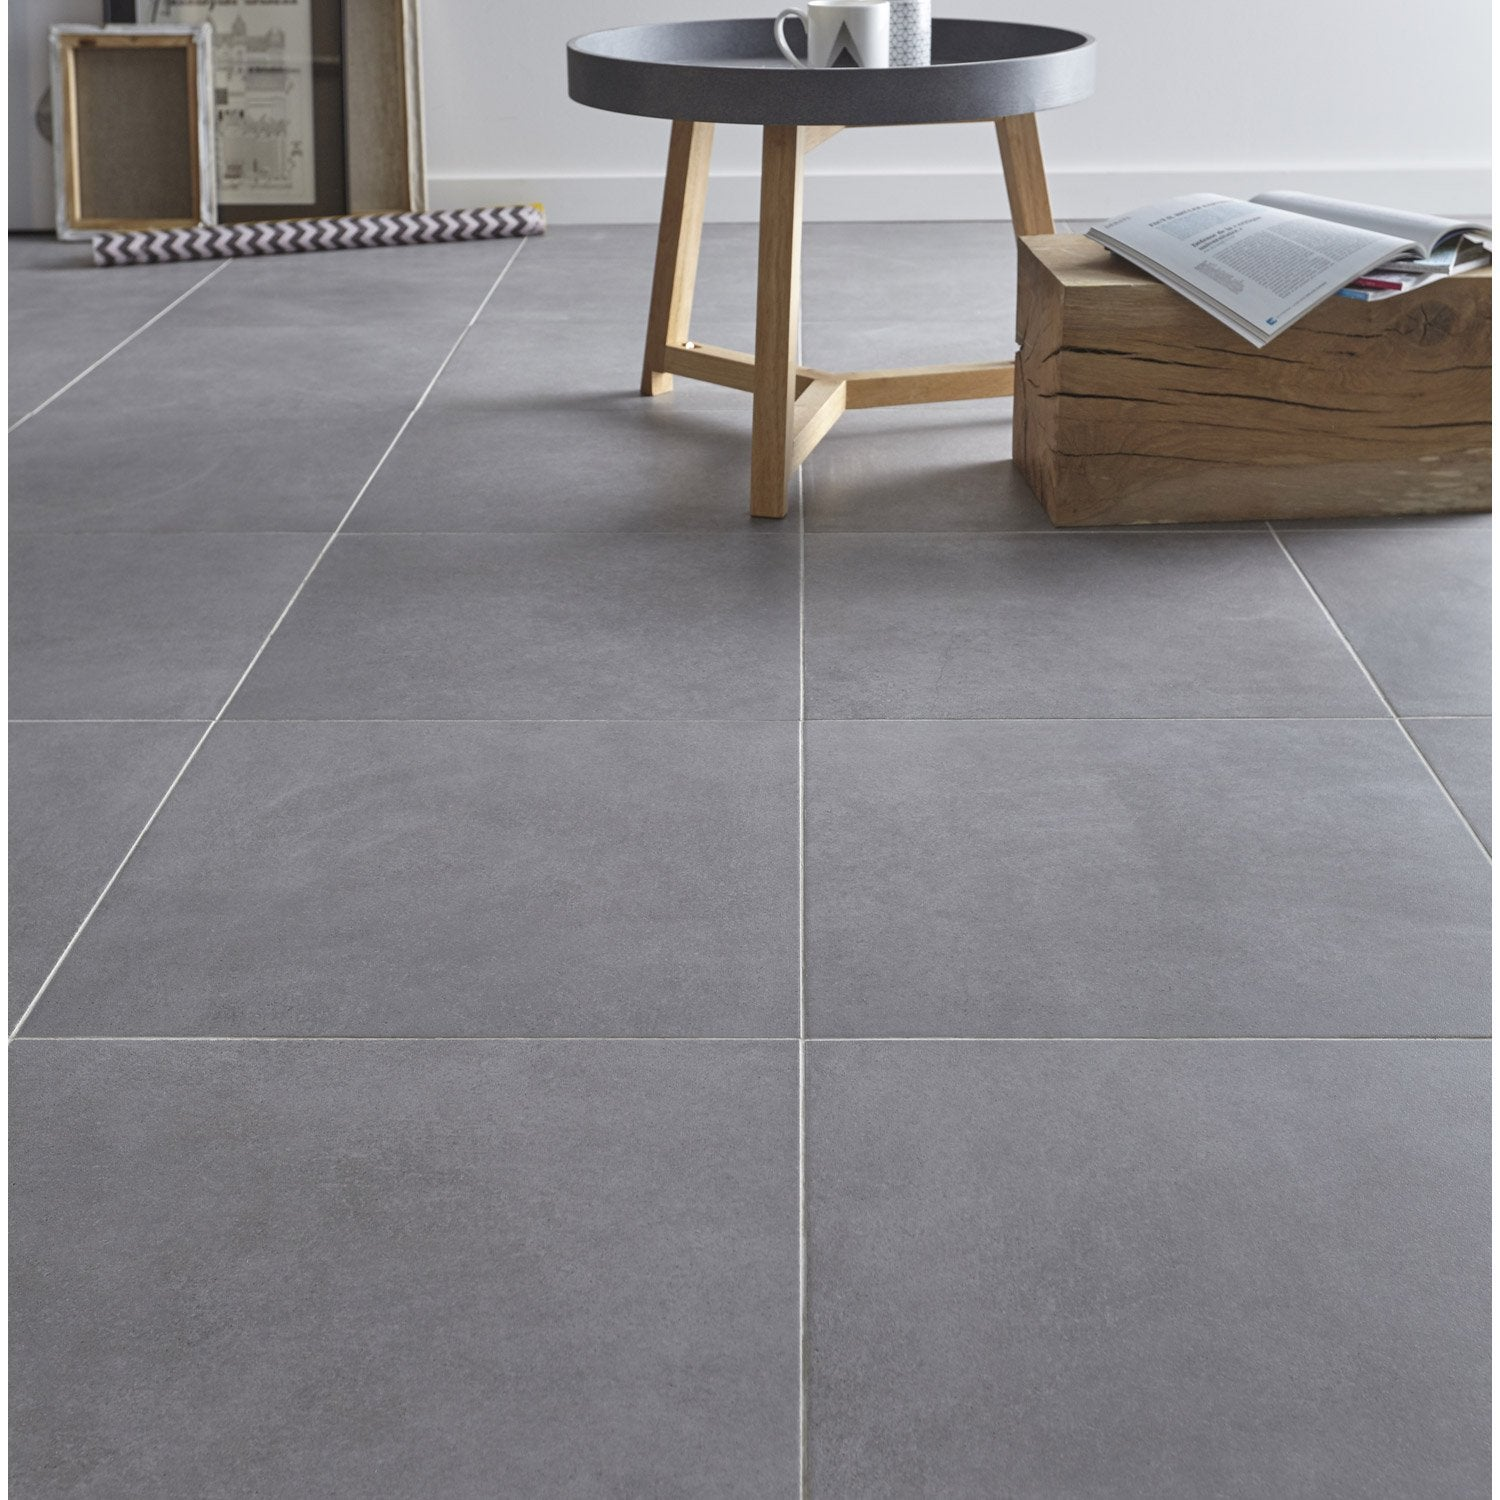 Carrelage sol gris effet b ton madison x cm for Carrelage 70x70 gris